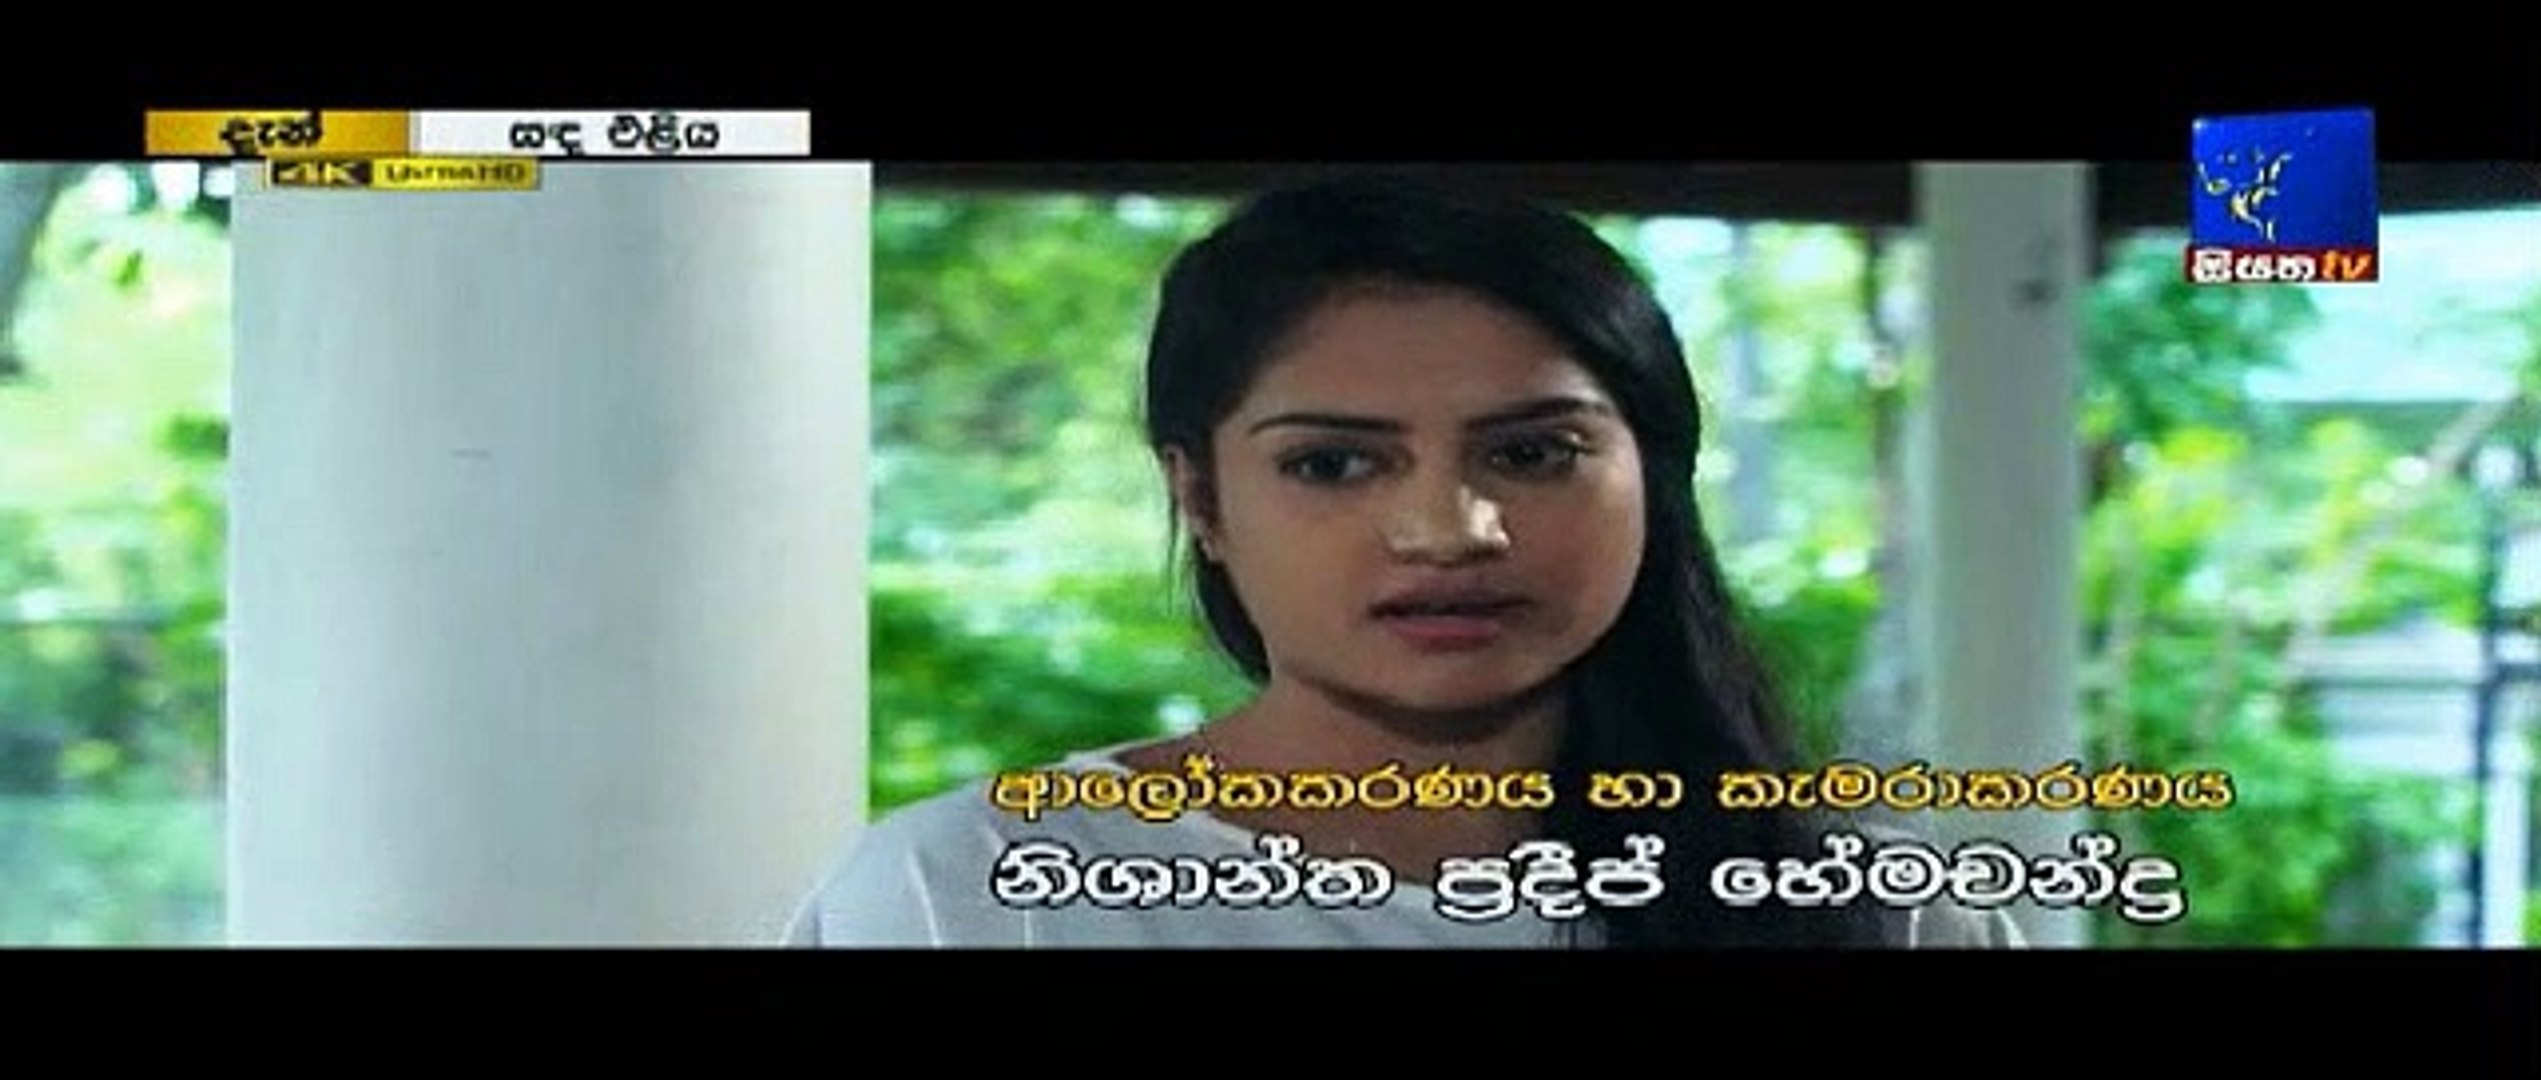 Sanda Eliya Teledrama - Episode 230 - 12th February 2019